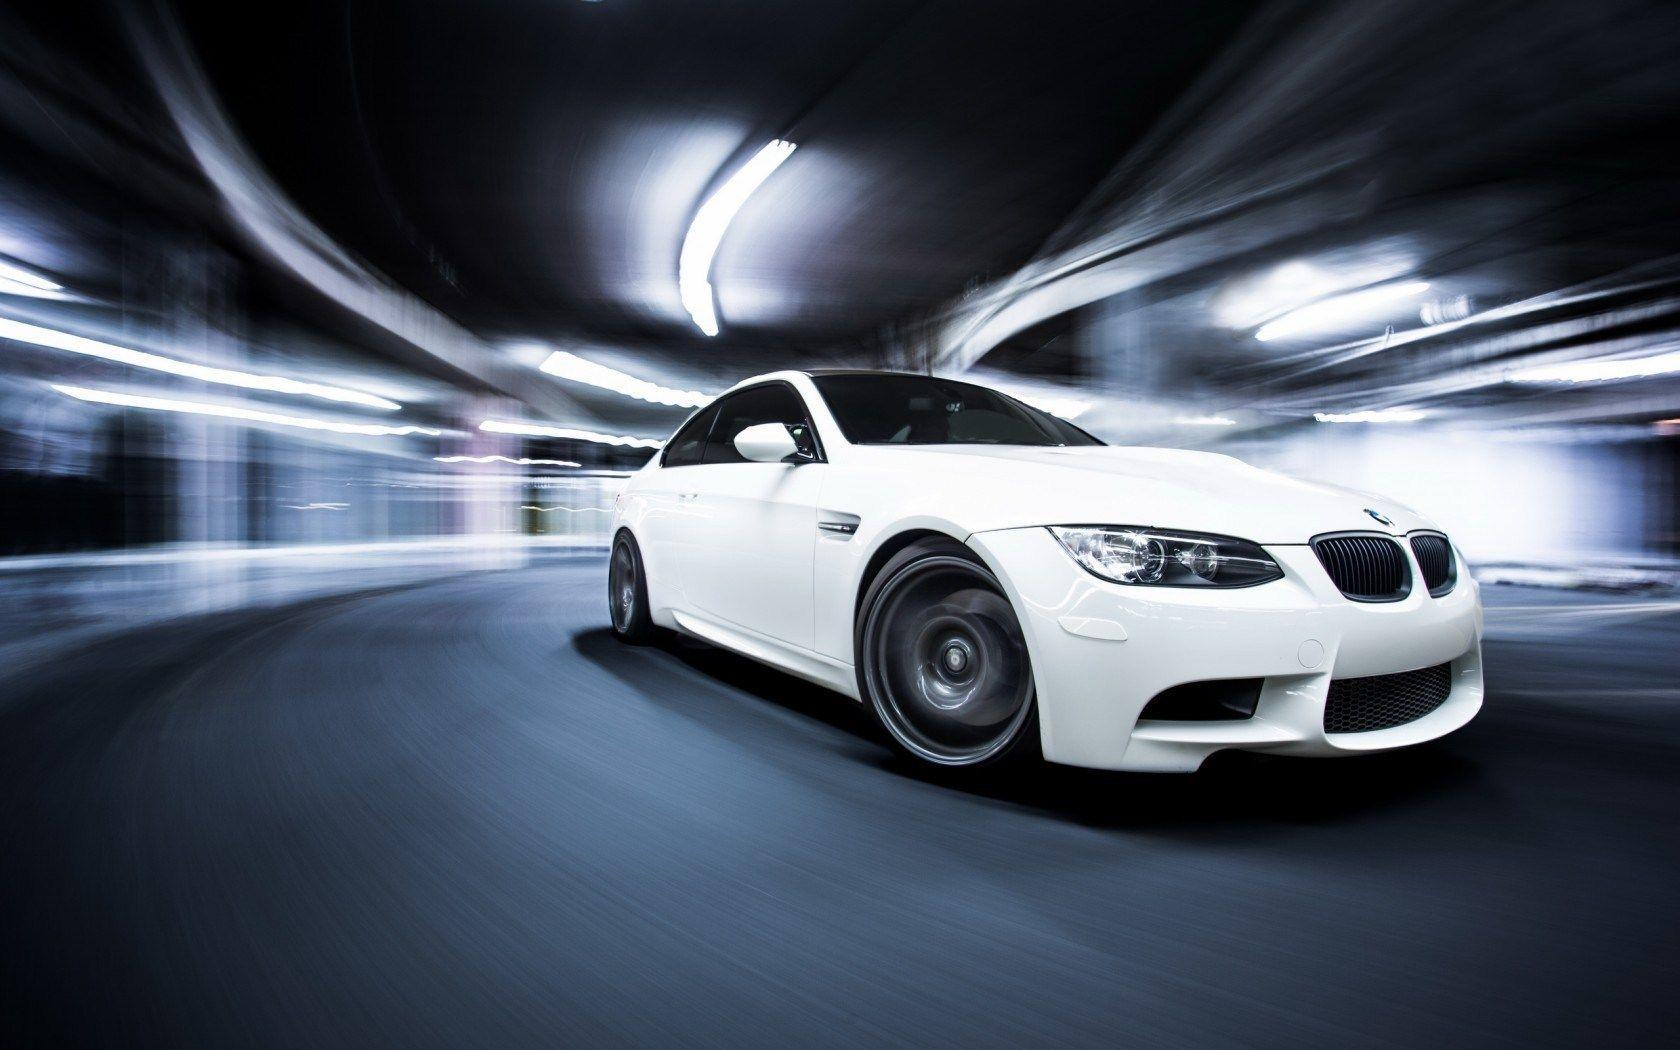 BMW M3 Wallpapers 10 Backgrounds